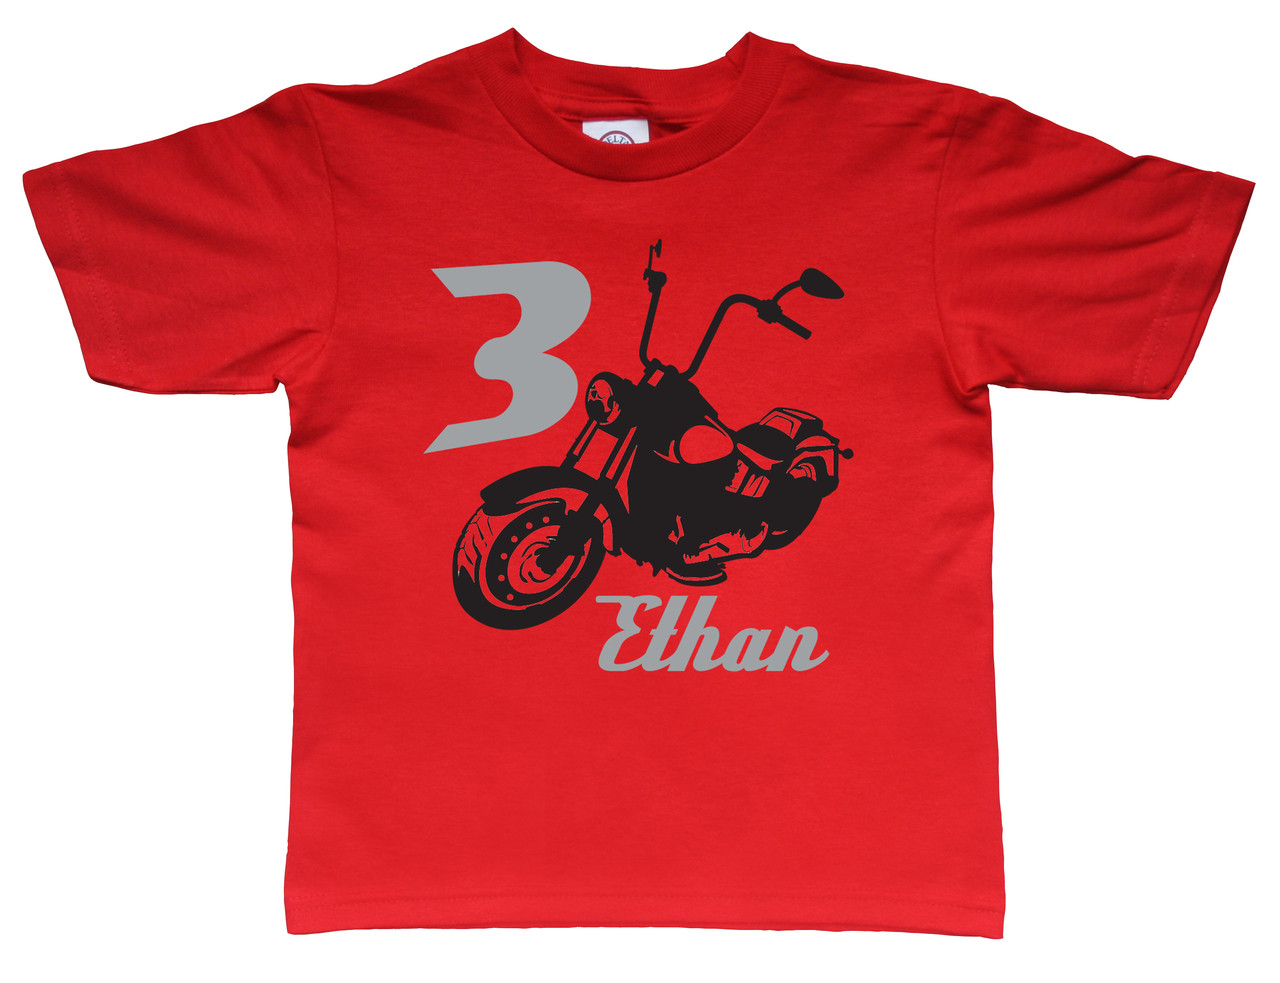 Motocycle tee shirt printed on red tshirt